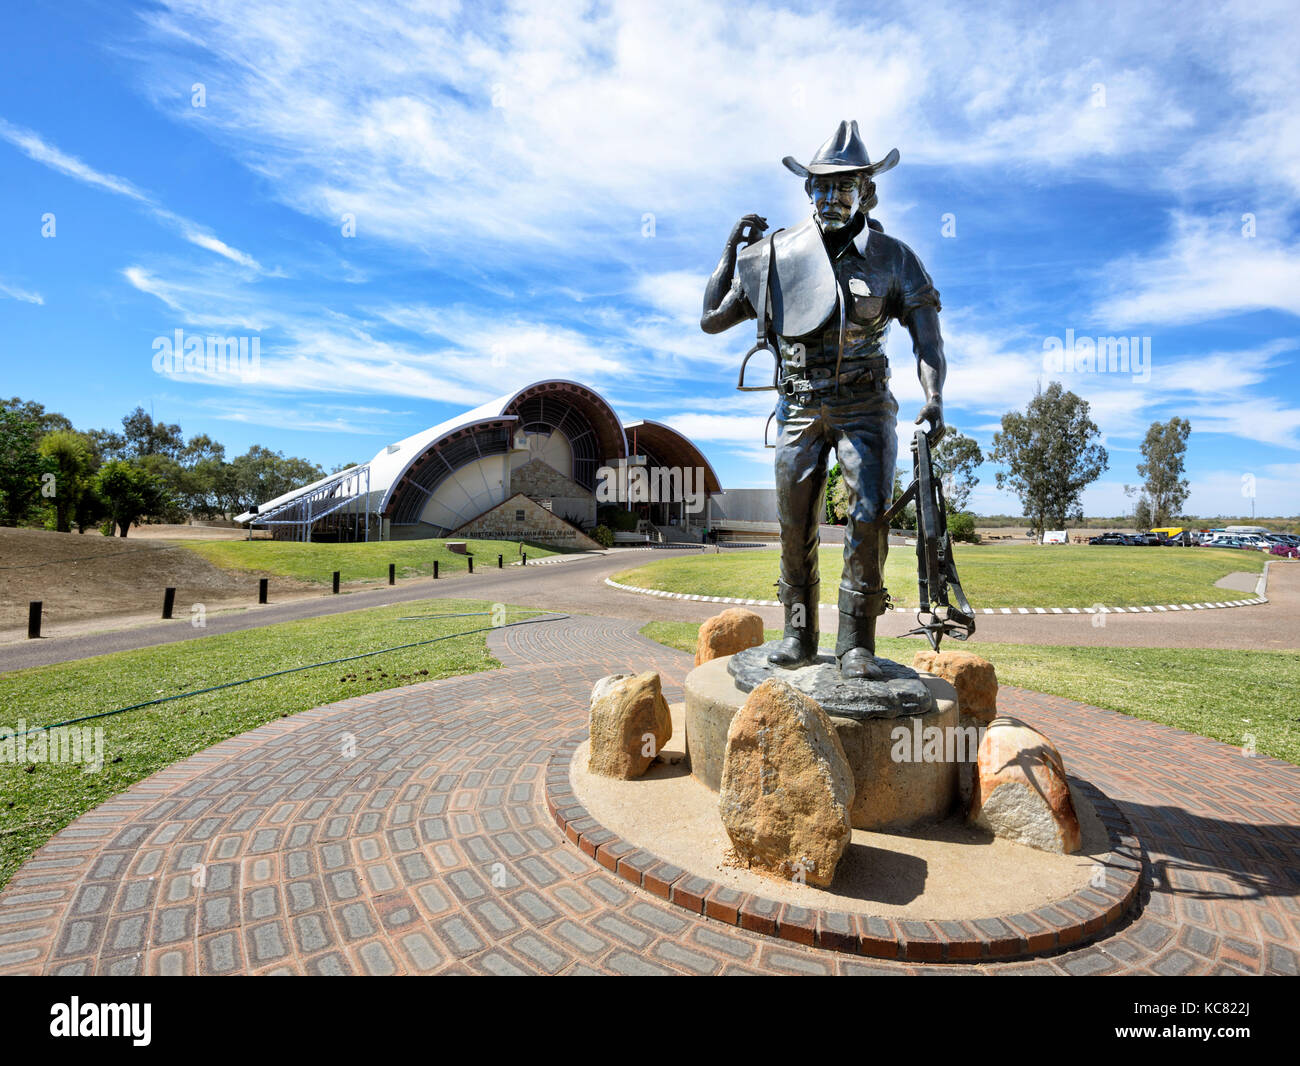 Statue of a Stockman outside the Stockman's Hall of Fame at Longreach, Central West Queensland, QLD, Australia - Stock Image